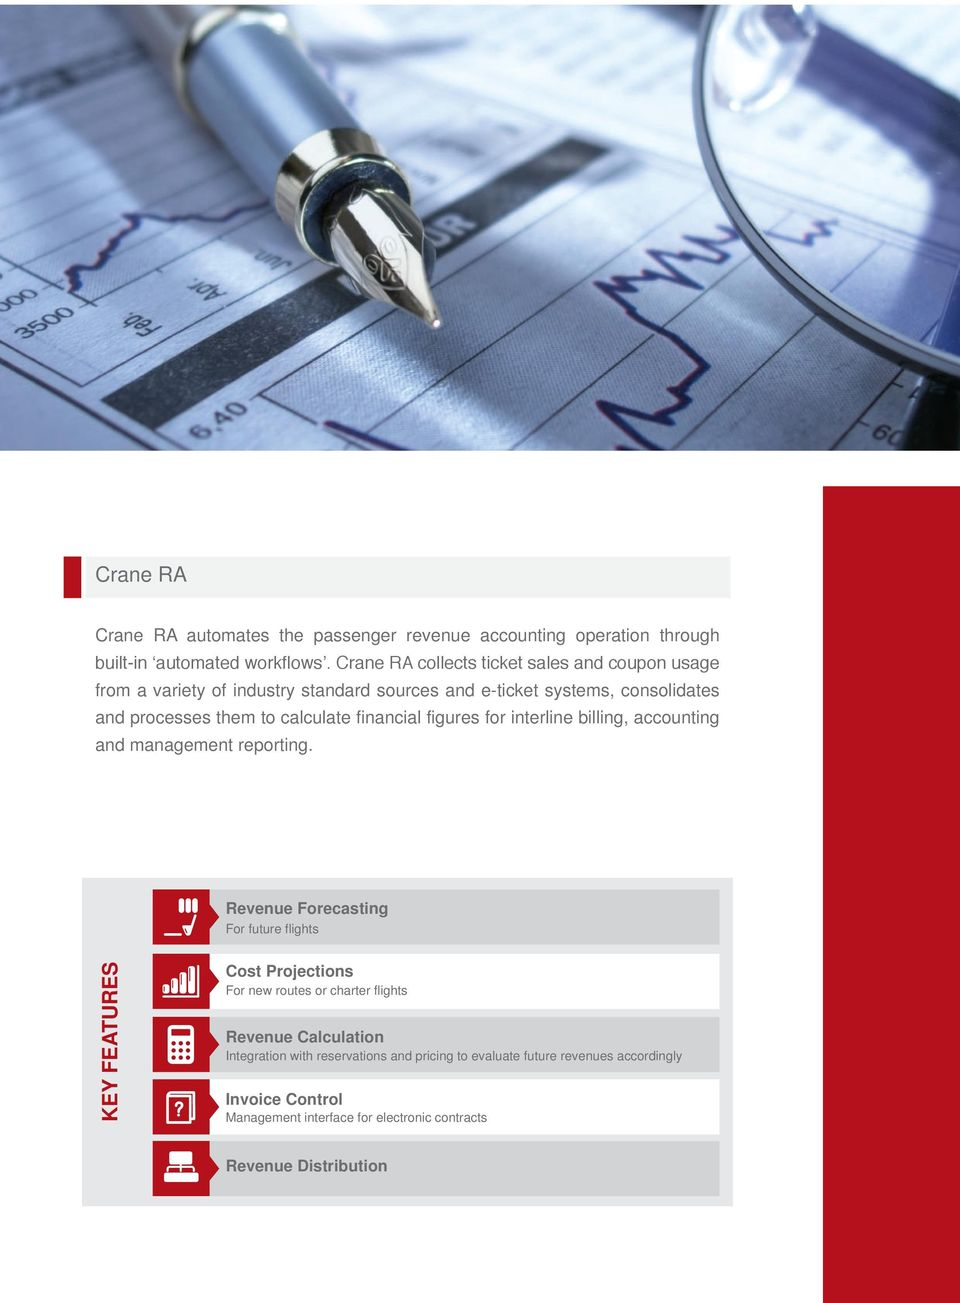 financial figures for interline billing, accounting and management reporting.